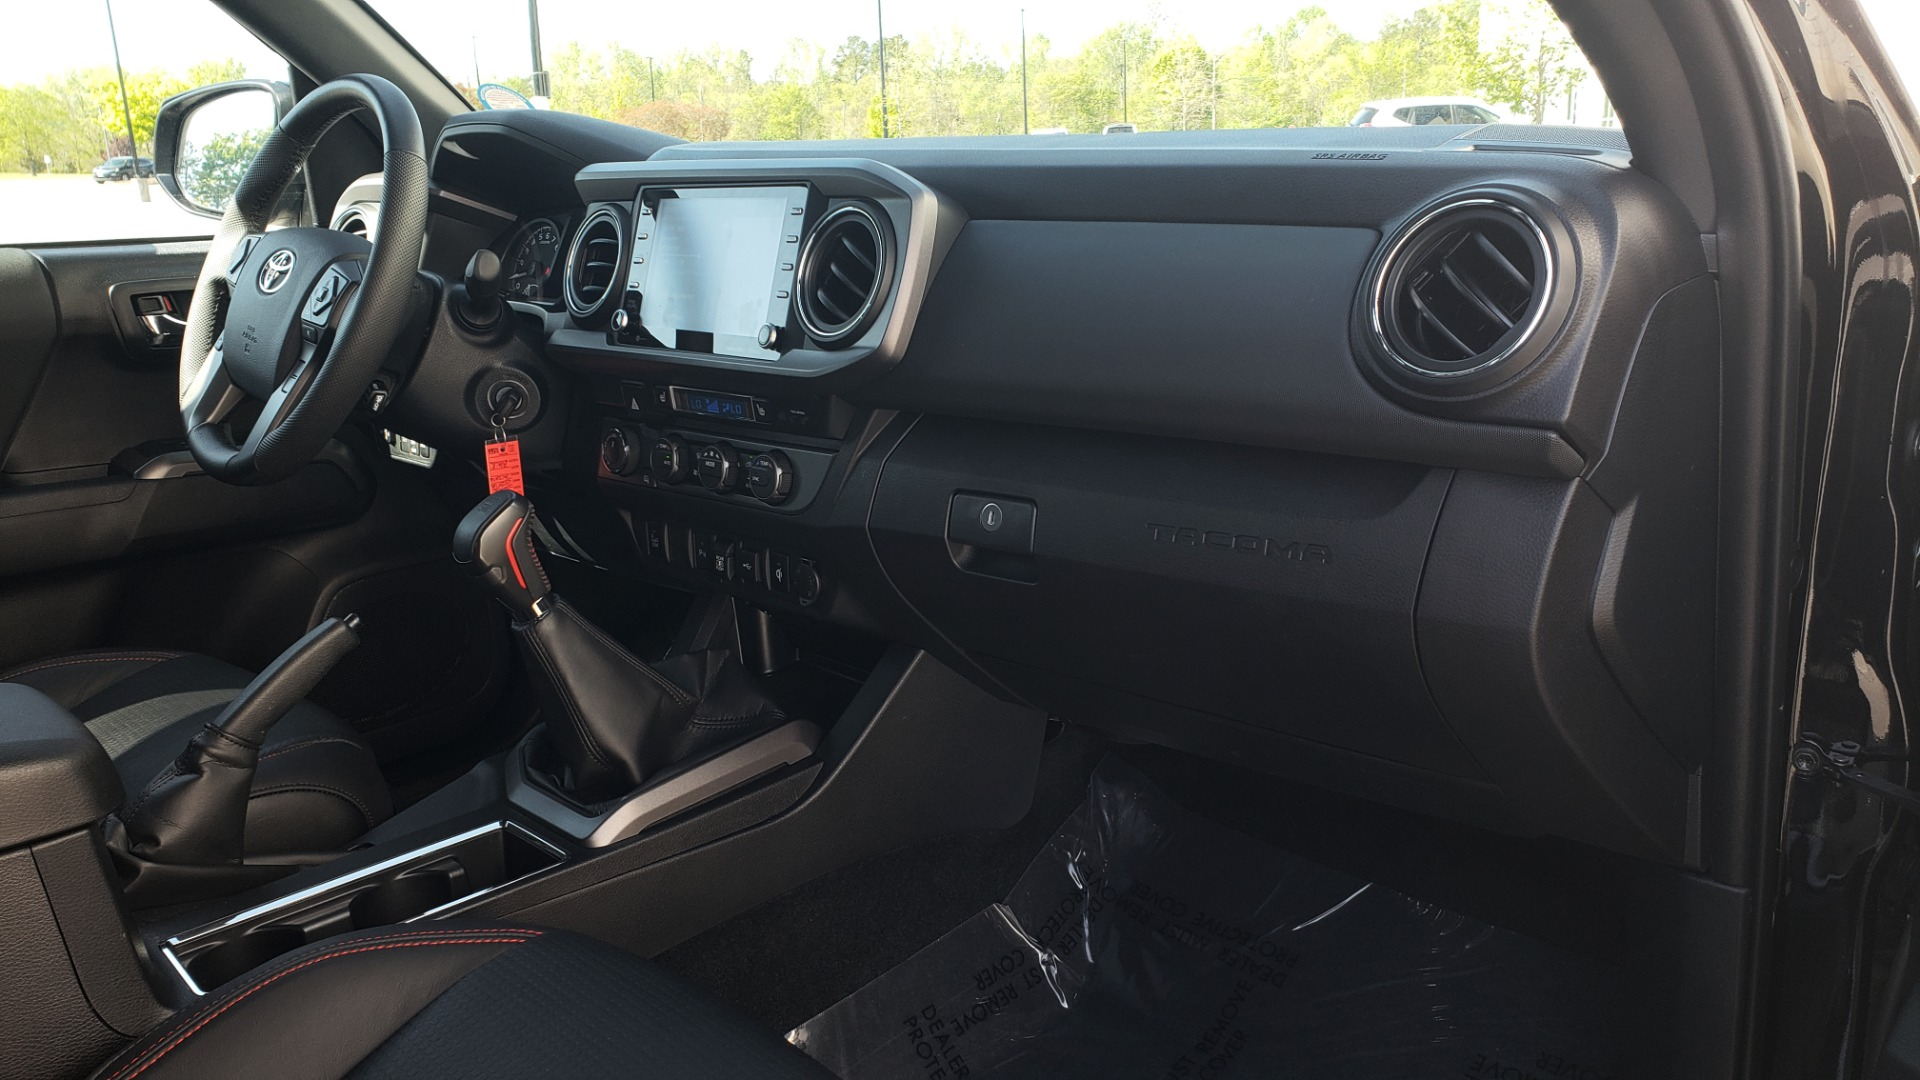 Used 2020 Toyota TACOMA 4WD TRD PRO / DOUBLECAB / 6-SPD MAN / NAV / SUNROOF / REARVIEW for sale Sold at Formula Imports in Charlotte NC 28227 67